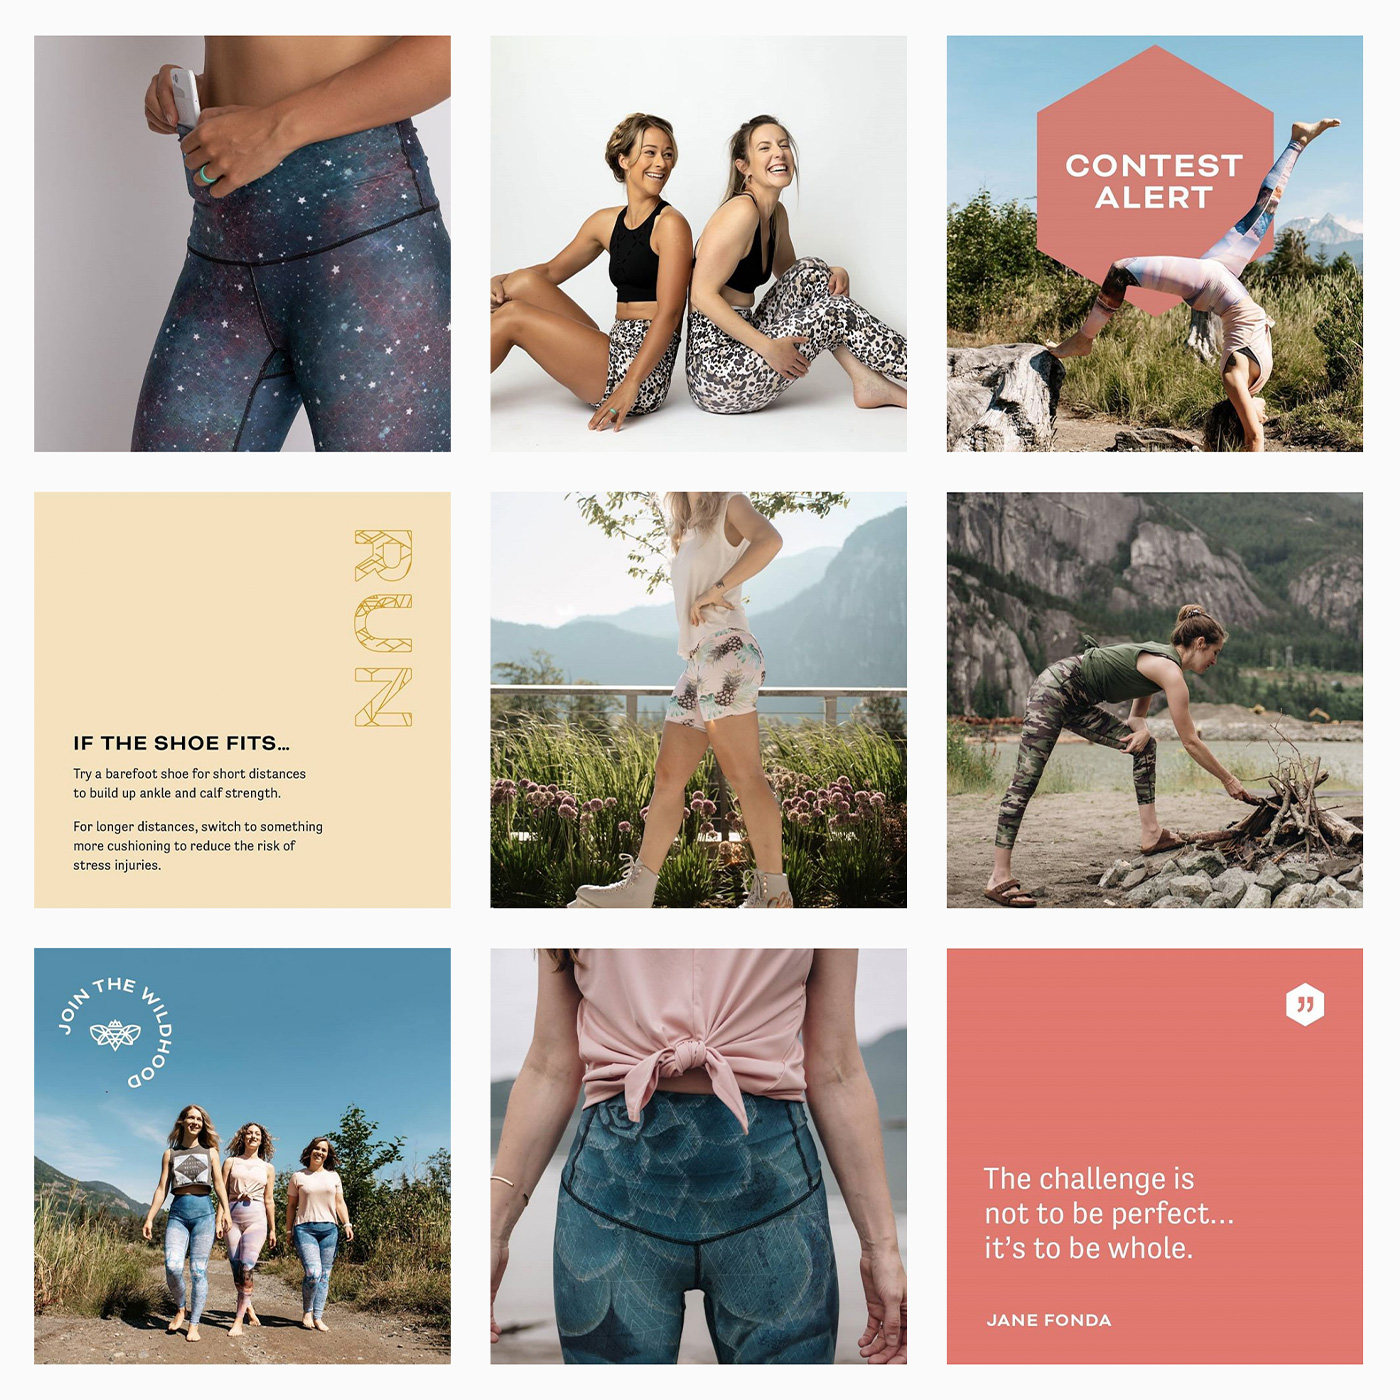 Flipside Creative's rebrand for Squamish BC-based slow-fashion fitness co Bewildher included a logo design, new colour palette, pattern design, Instagram feed design, and packaging details.